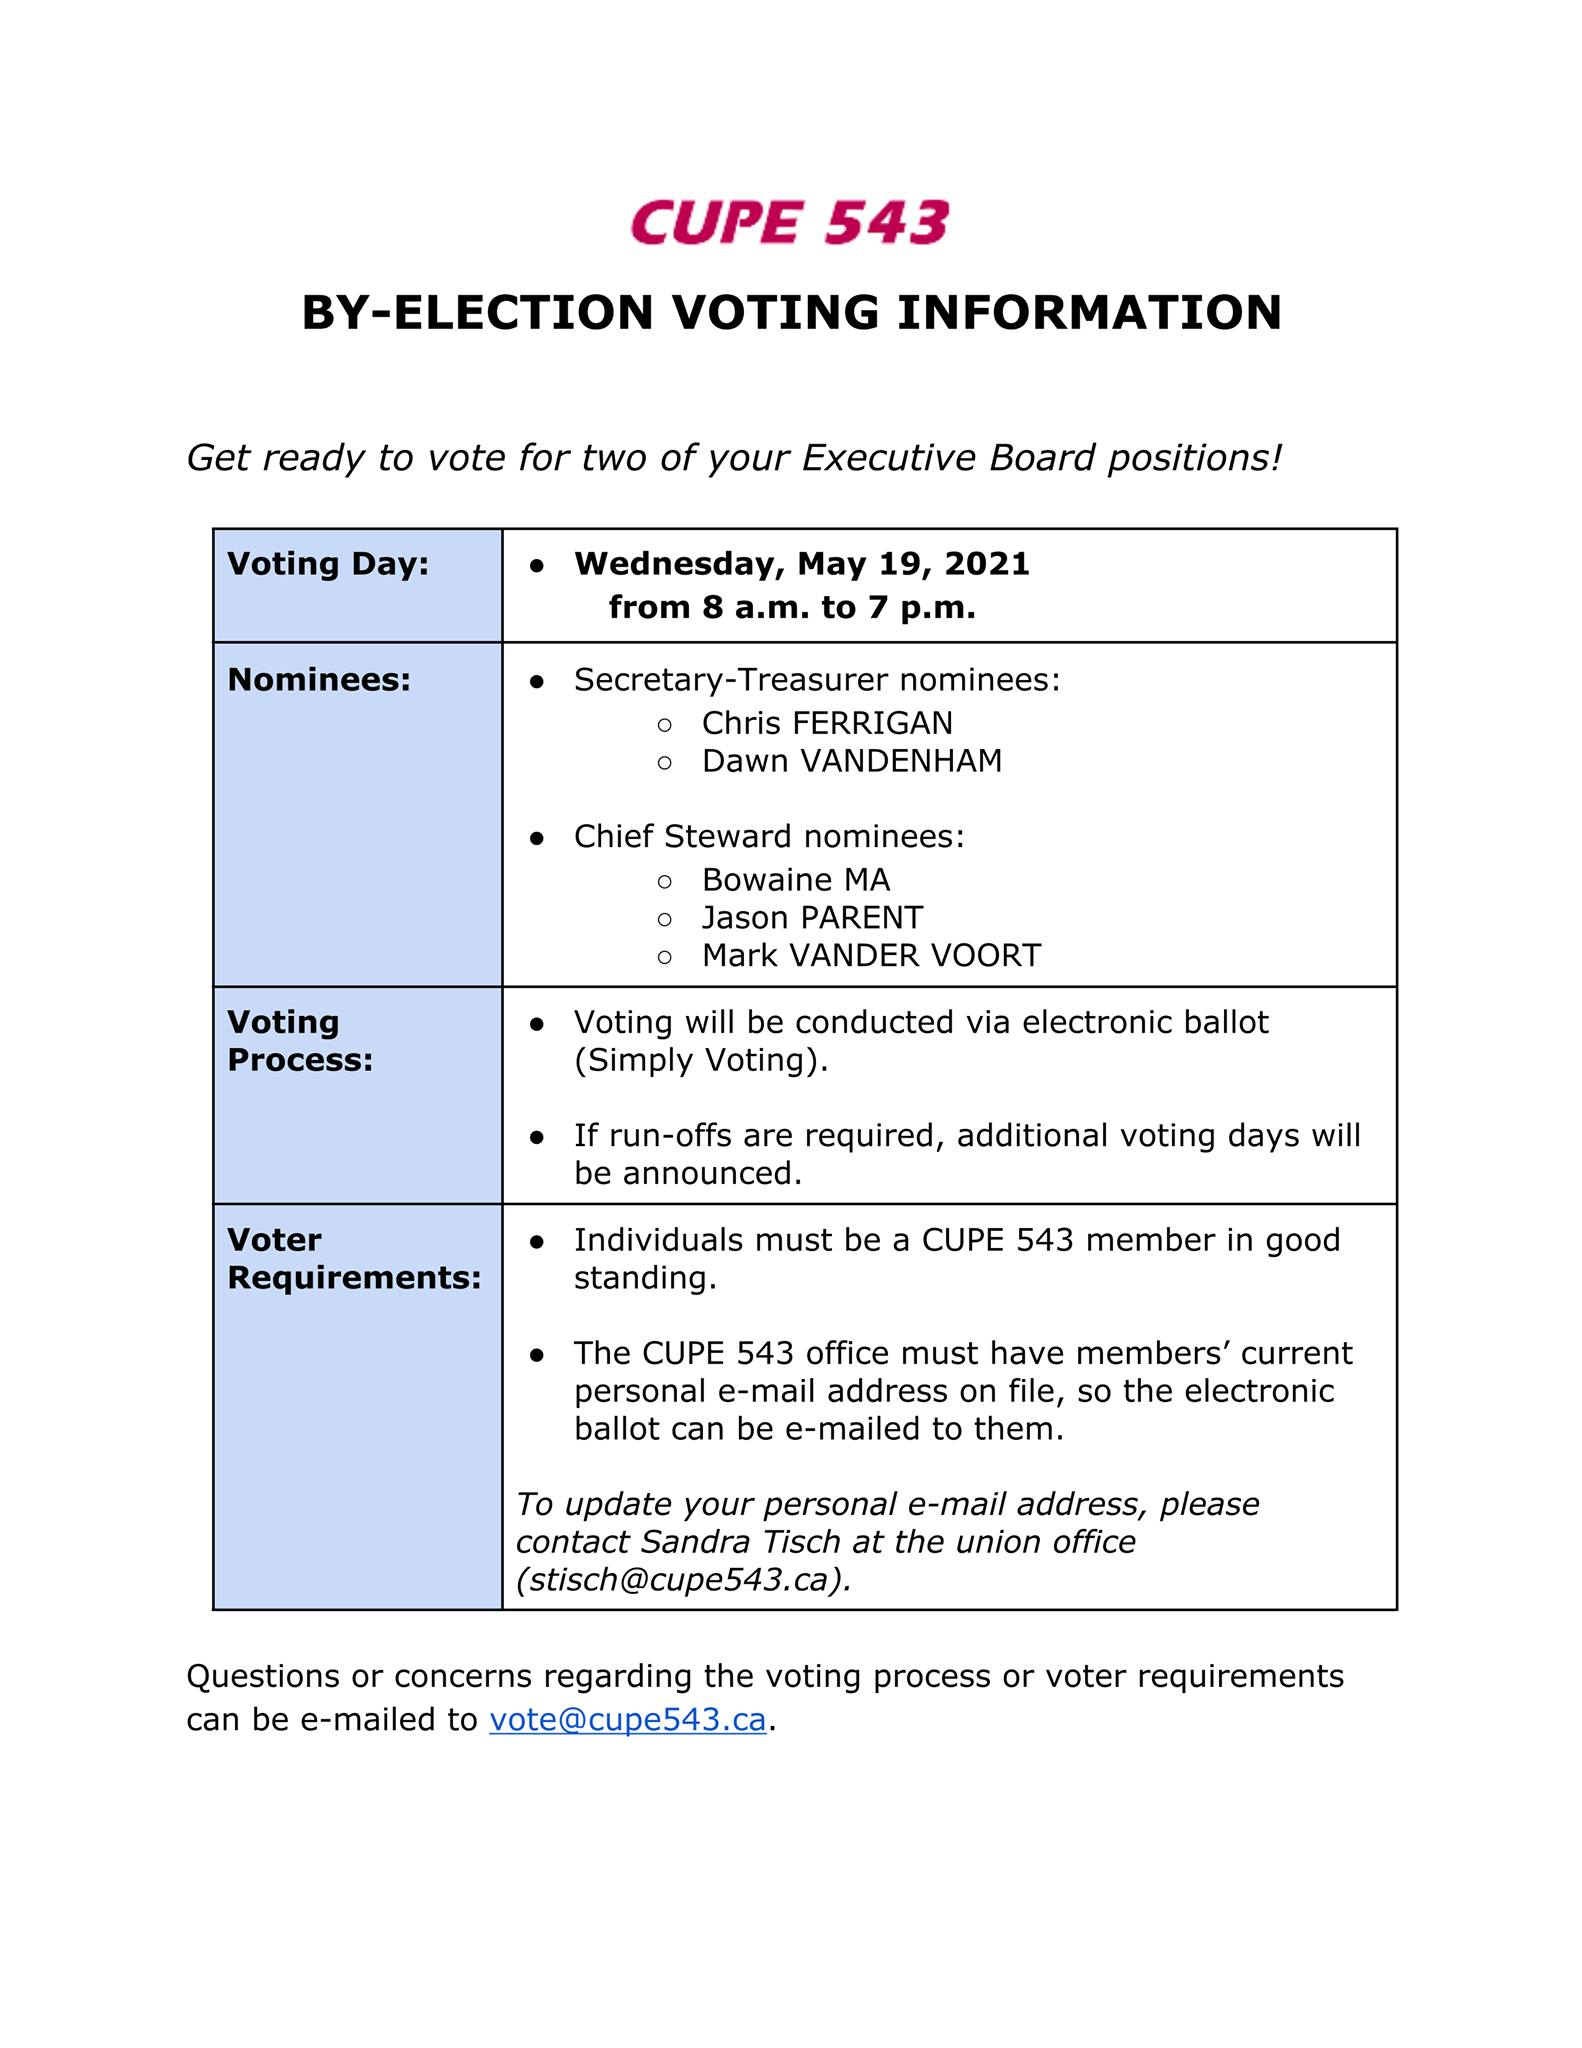 Runoff Election Chief Steward 27 May 2021 @ Electronic Voting